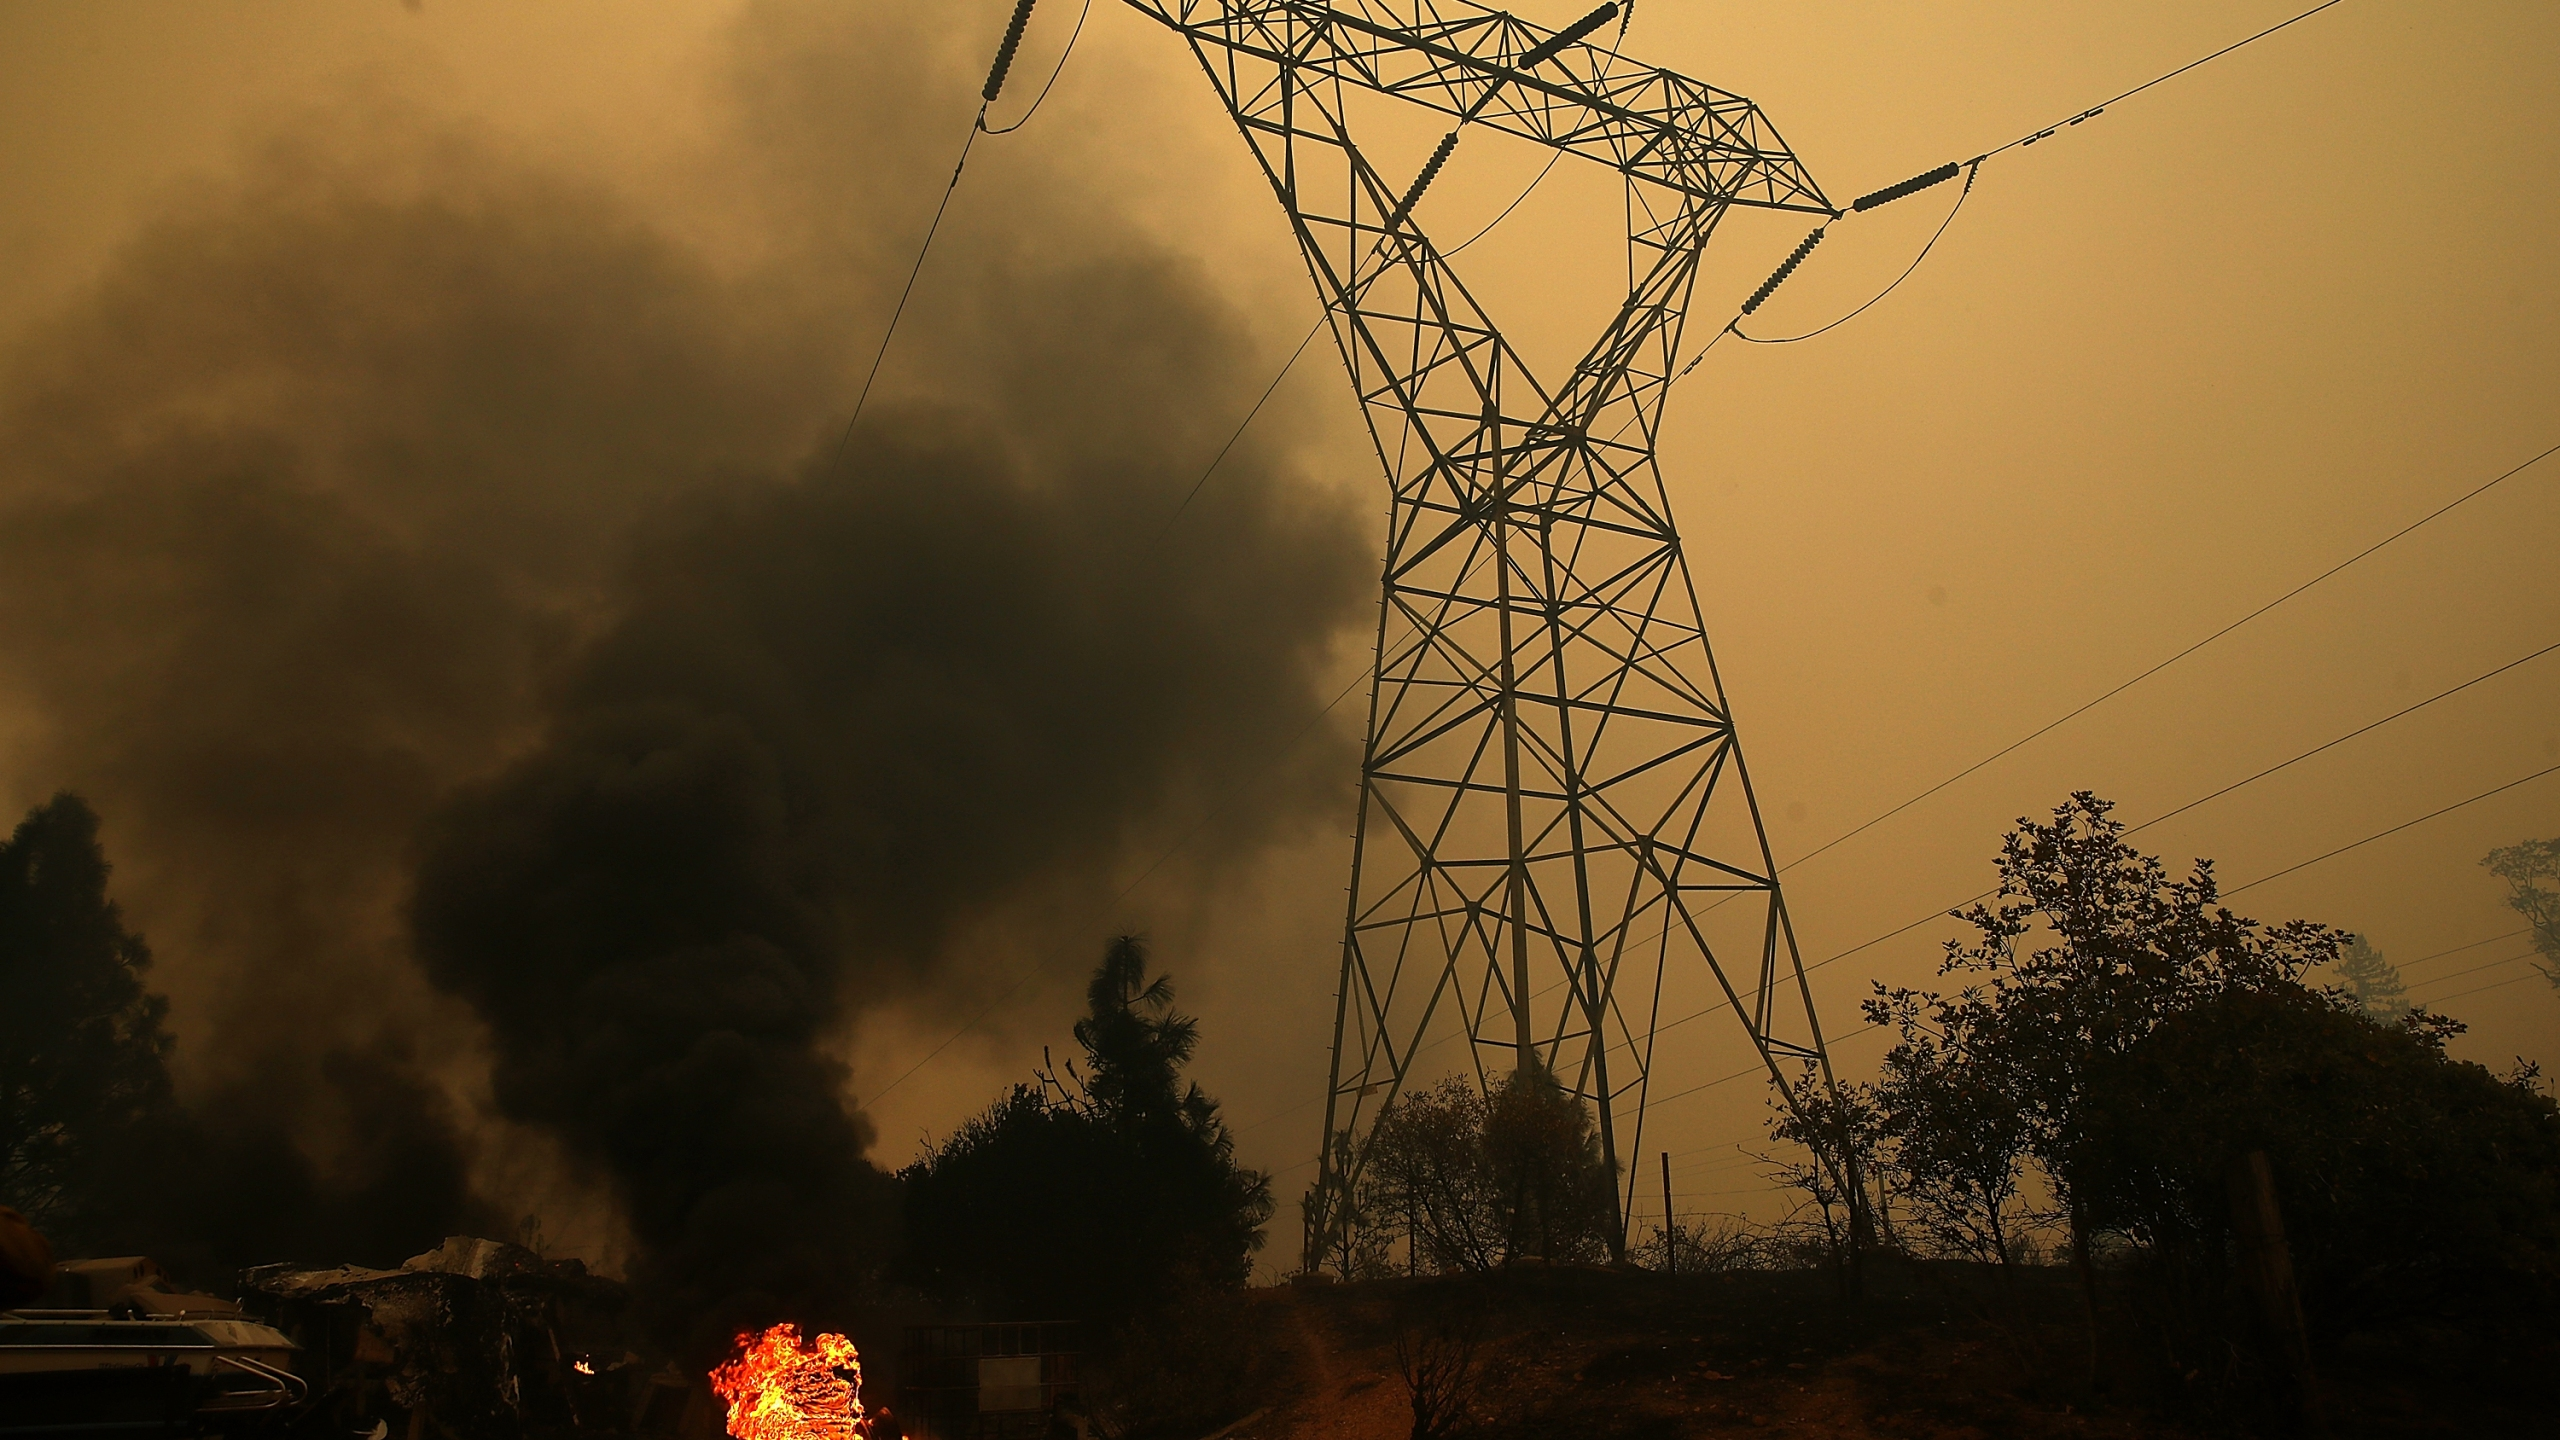 Smoke rises next to a power line tower after the Camp Fire moved through the area on November 9, 2018 in Big Bend, California. (Credit: Justin Sullivan/Getty Images)